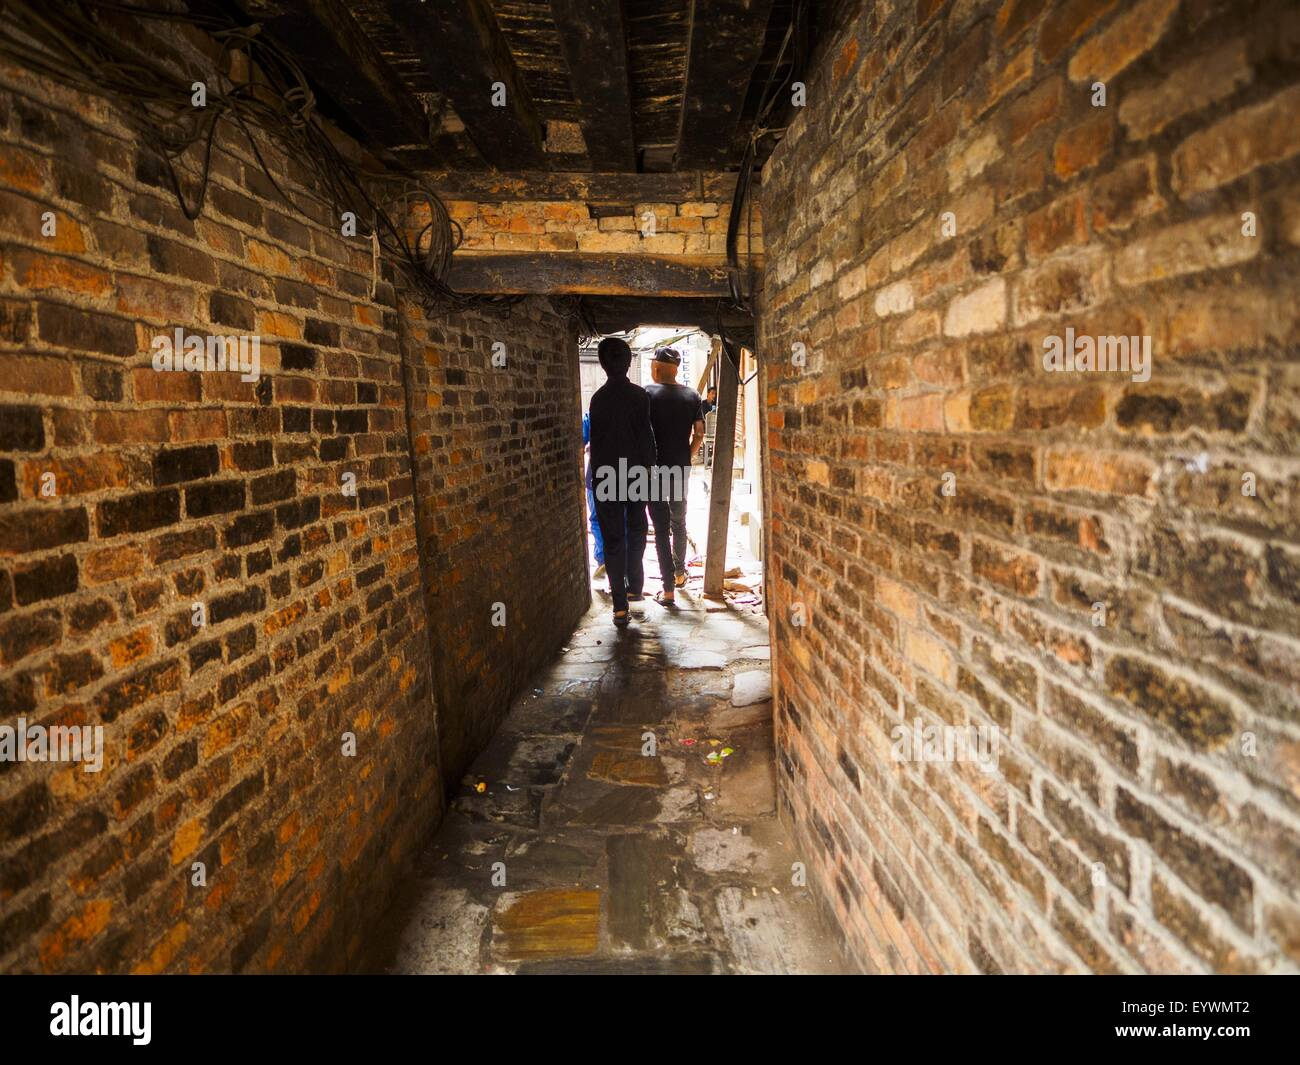 Kathmandu, Nepal. 1st Aug, 2015. A brick tunnel leads into a residential courtyard in Kathmandu. After earthquake, - Stock Image